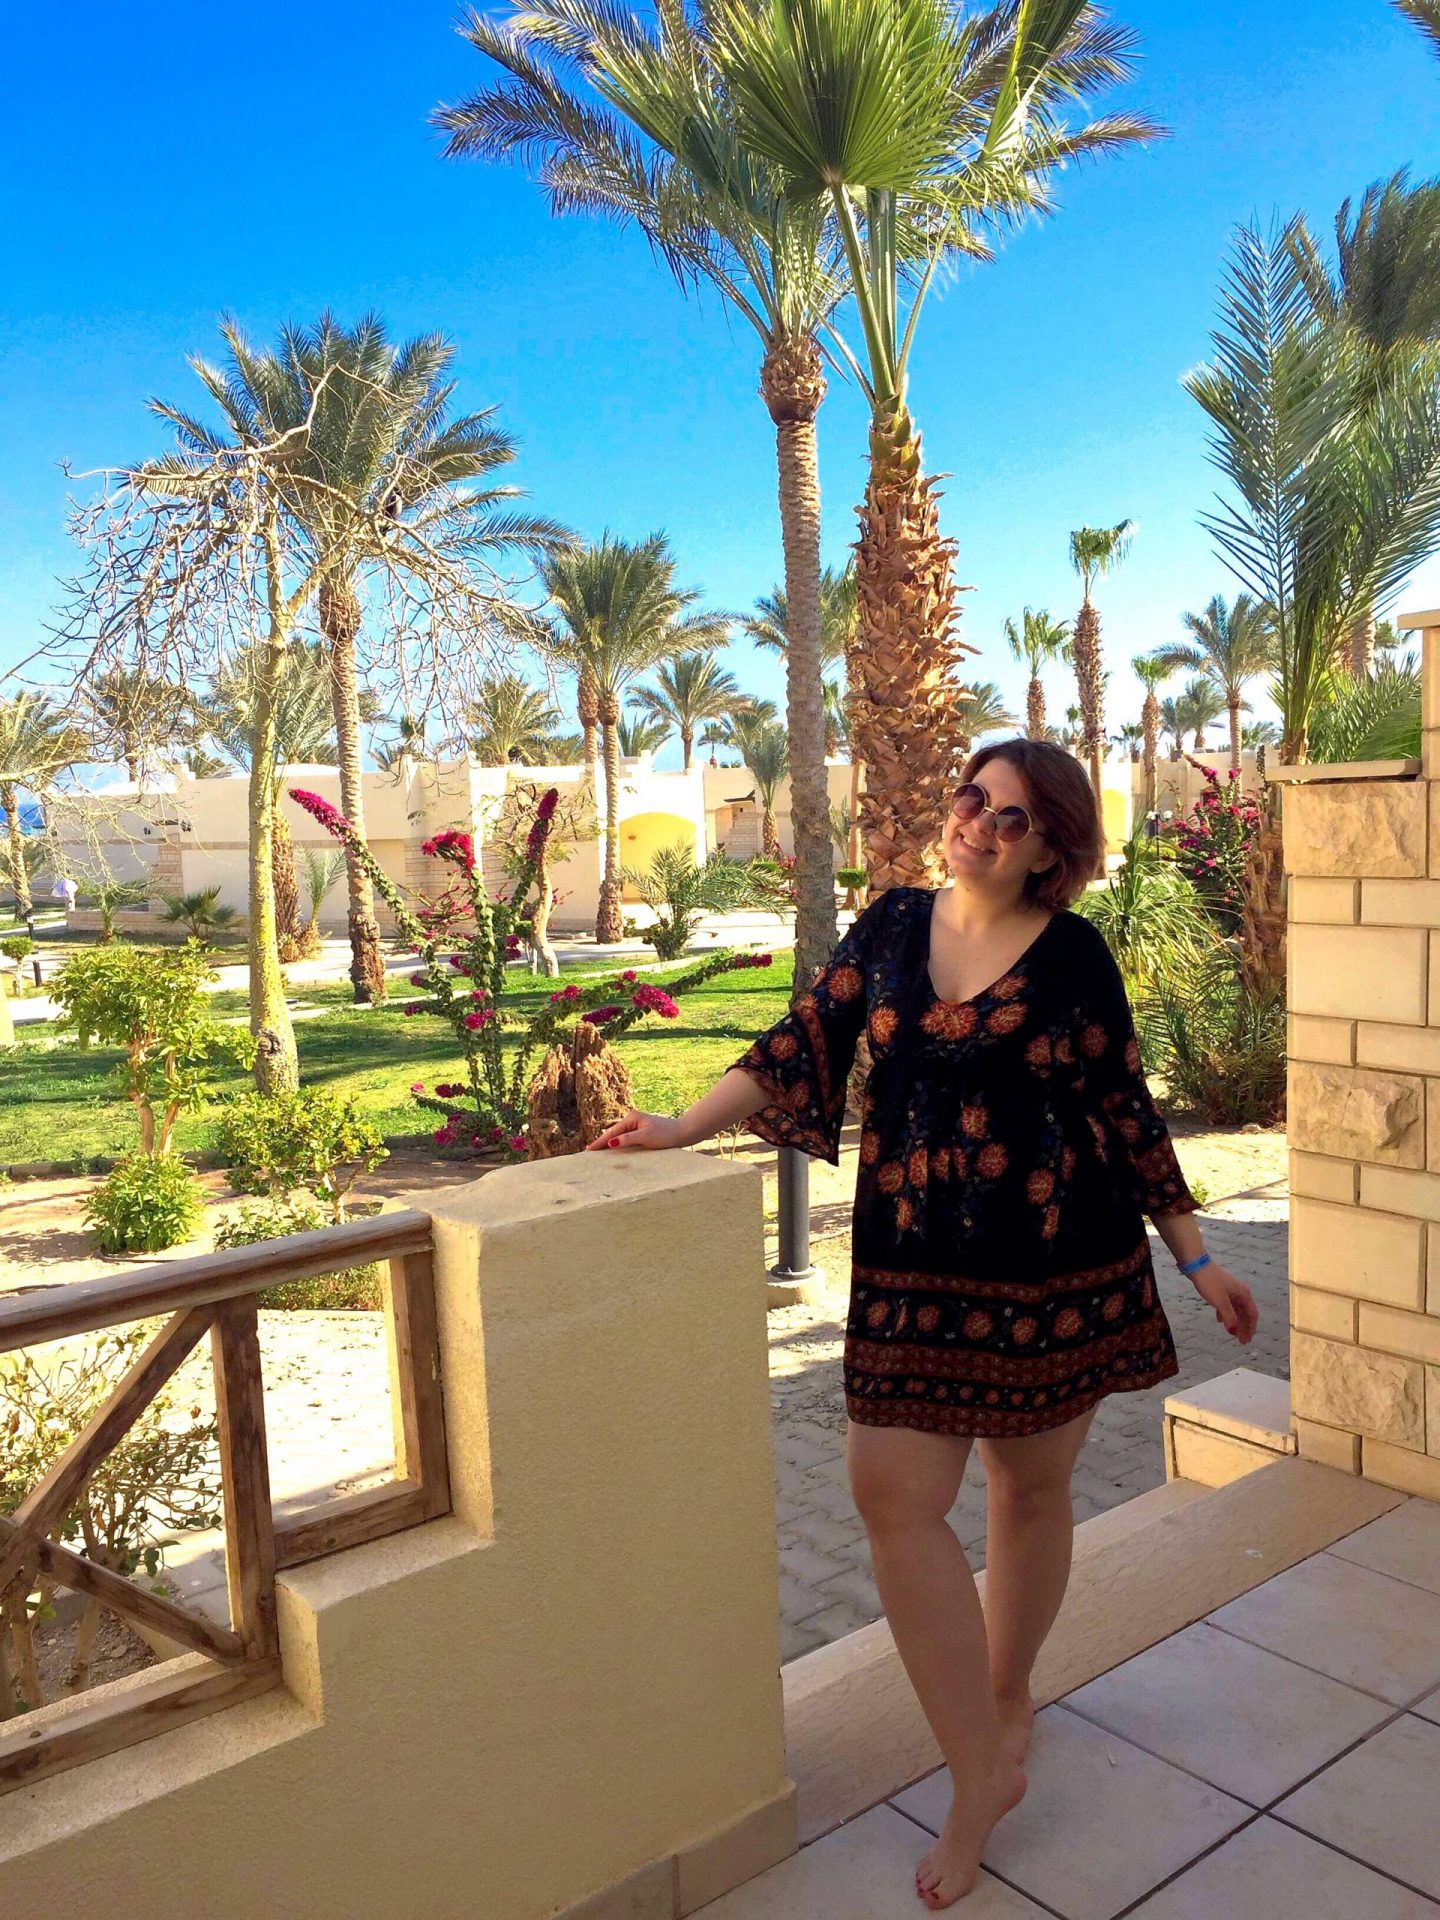 Coral Beach Hurghada Resort and the Truth about Egyptian Men